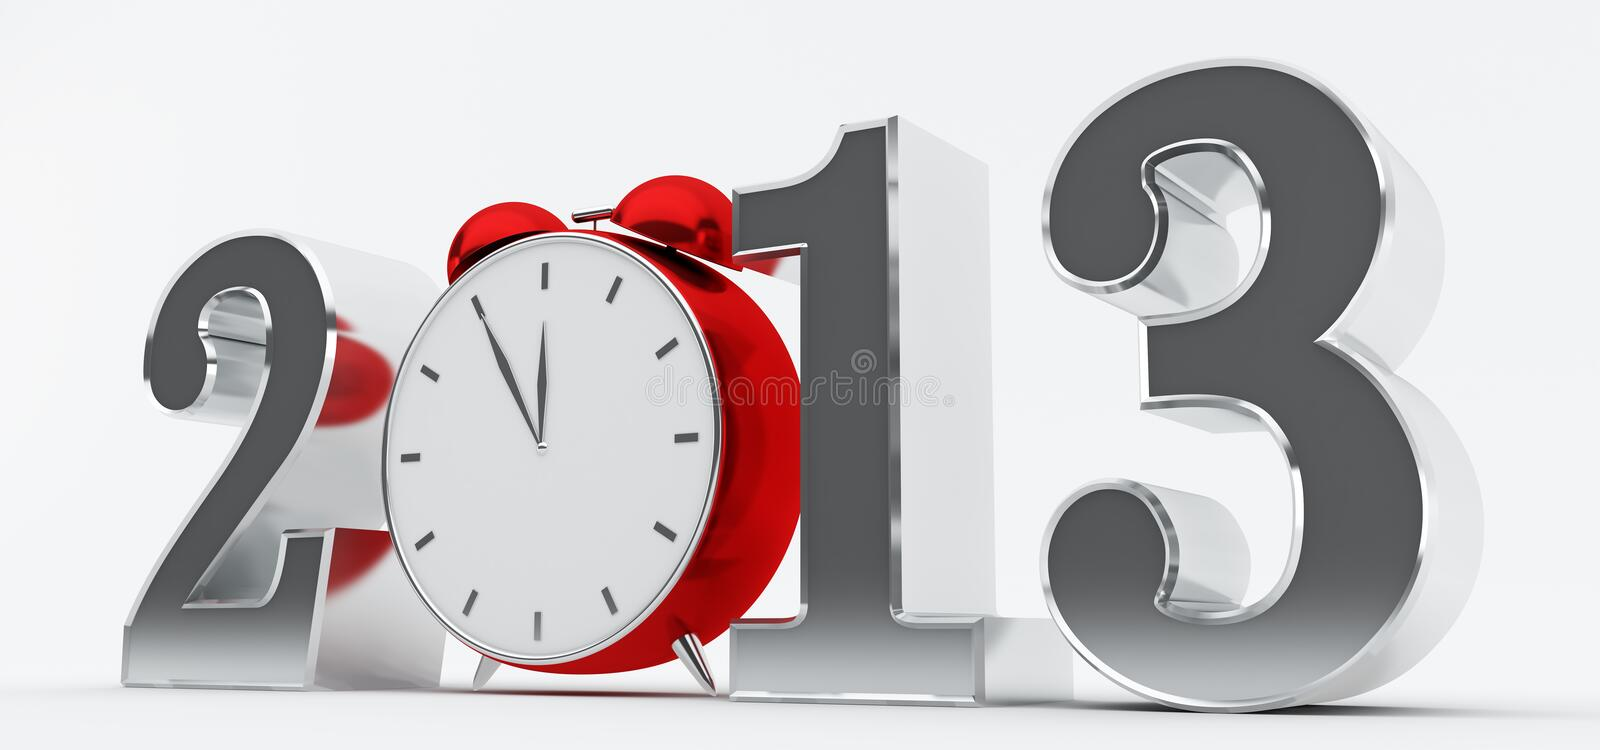 Download 2013 Concept With Red Clock Stock Illustration - Illustration: 27648610